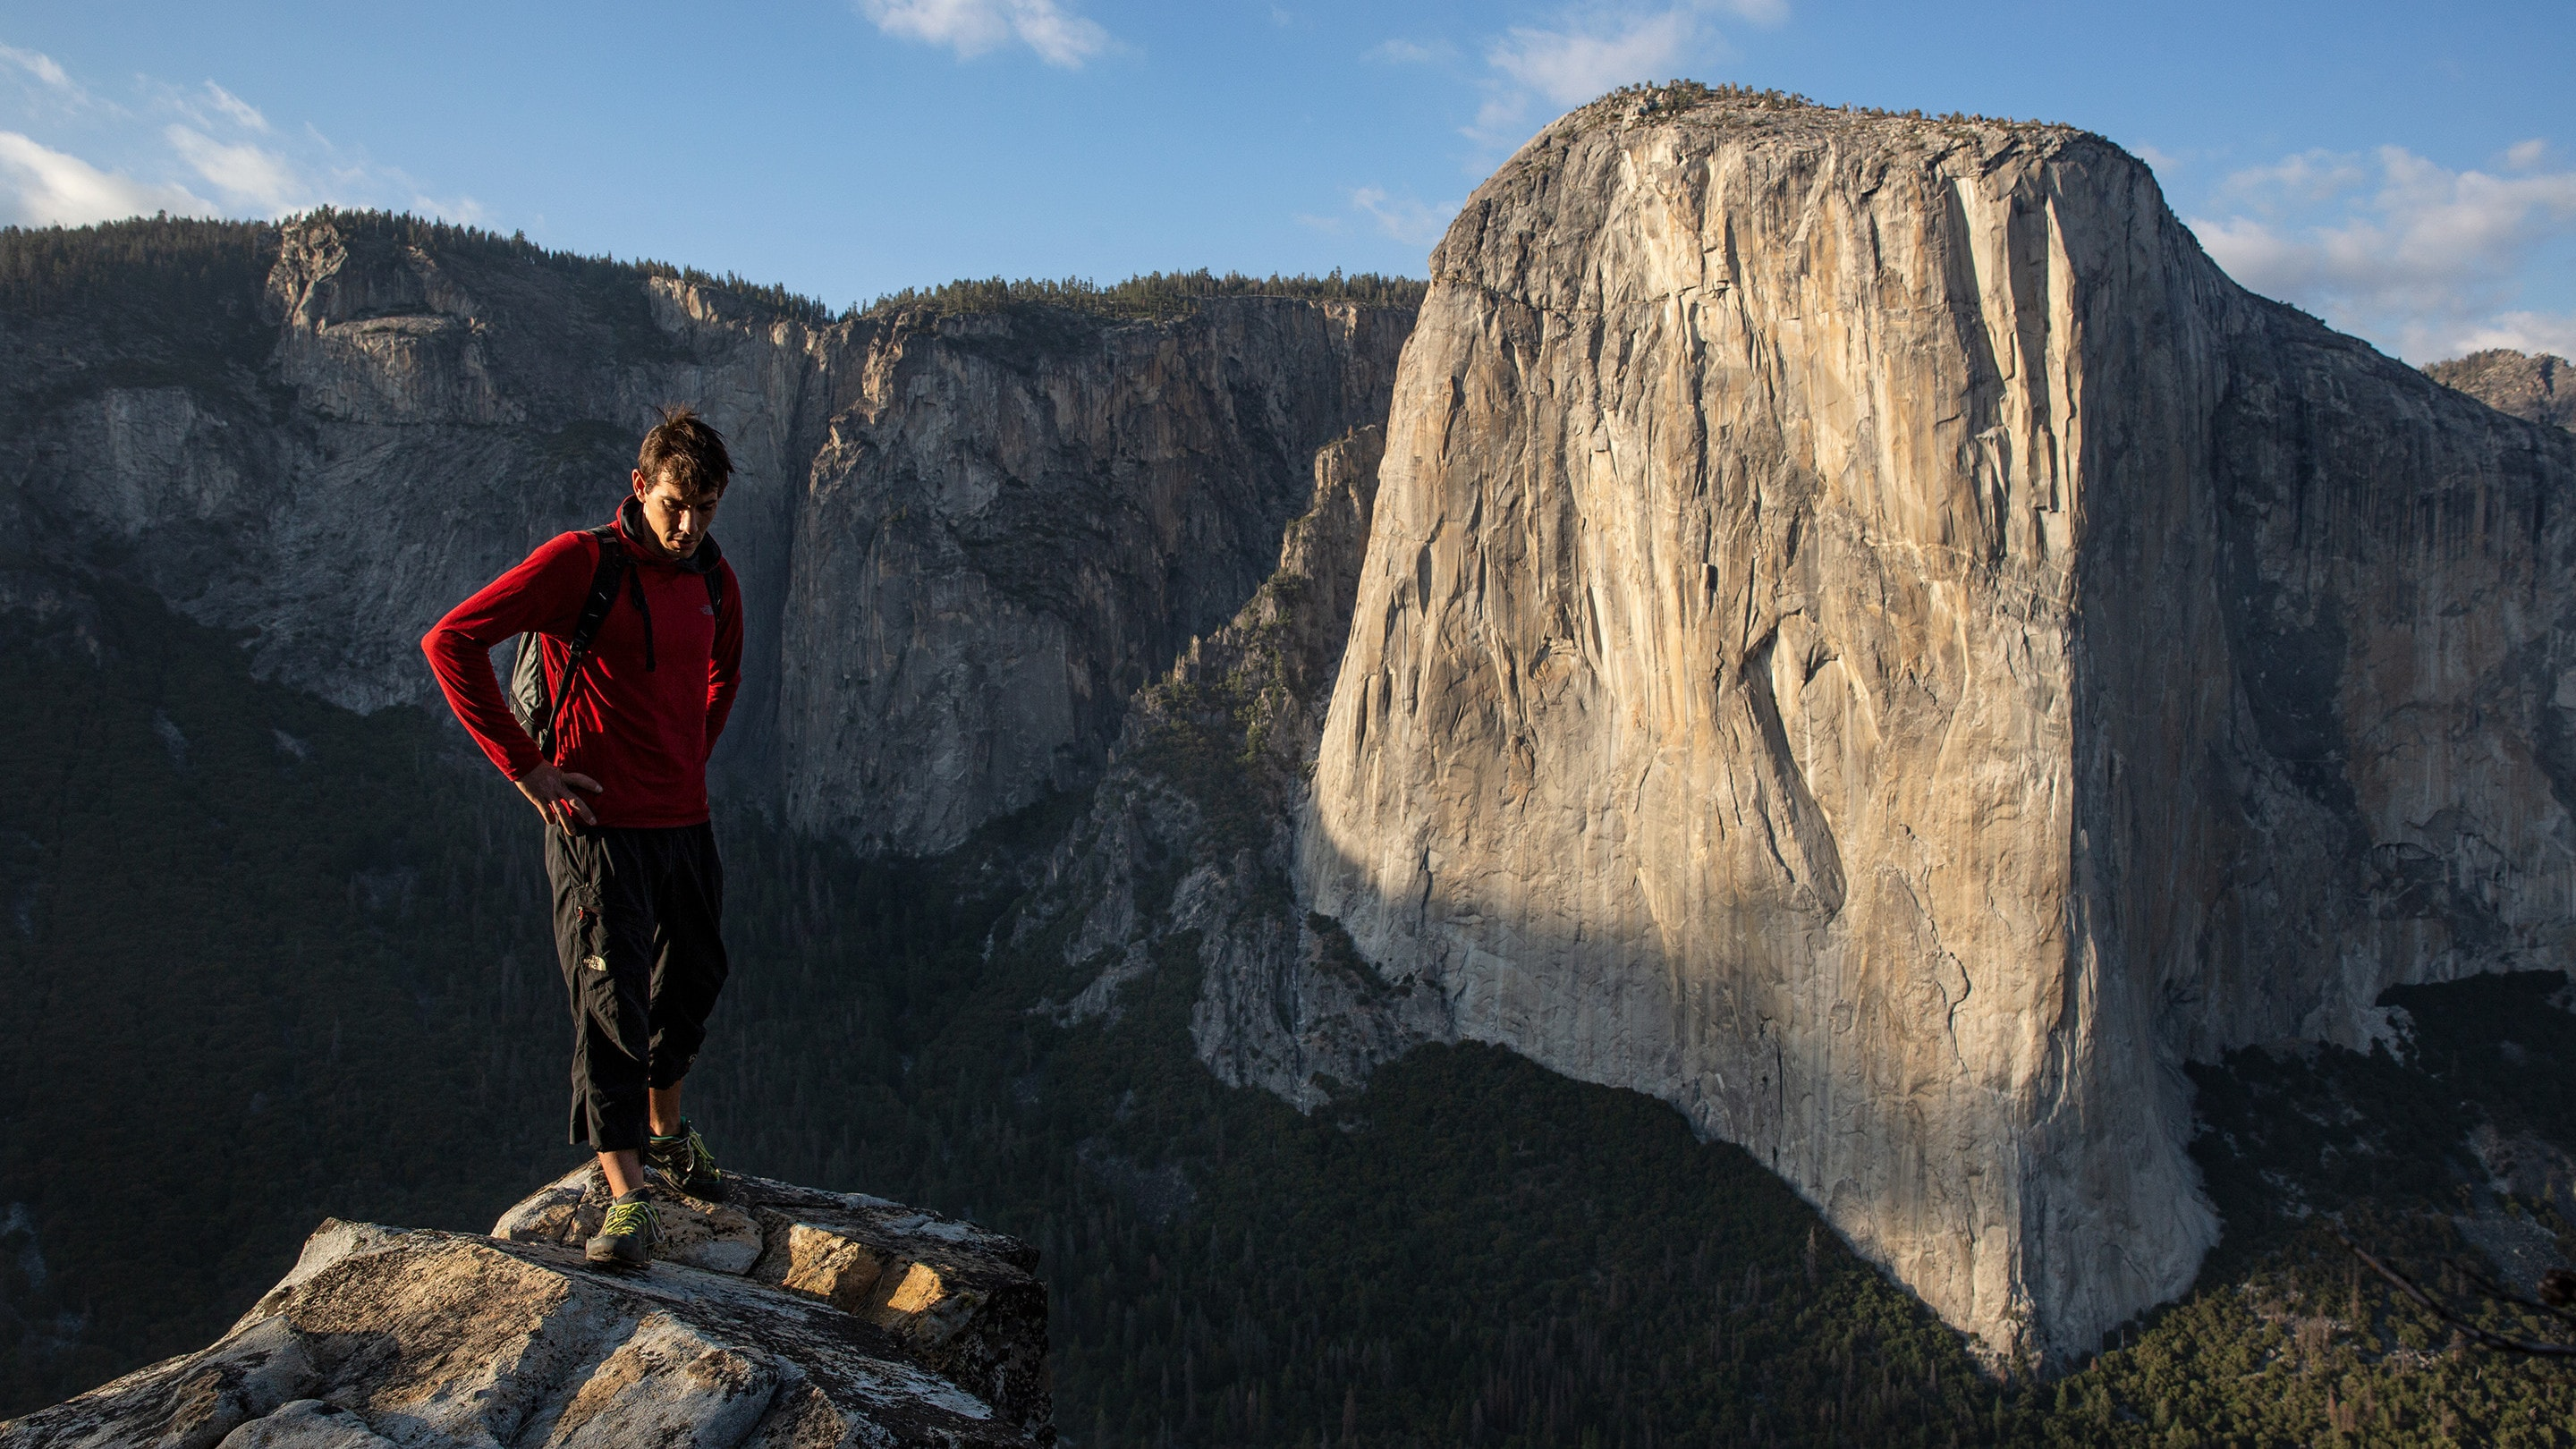 Alex Honnold on top of Lower Cathedral with El Capitan in the background, in Yosemite National Park, California. (Photo by National Geographic/Samuel Crossley)